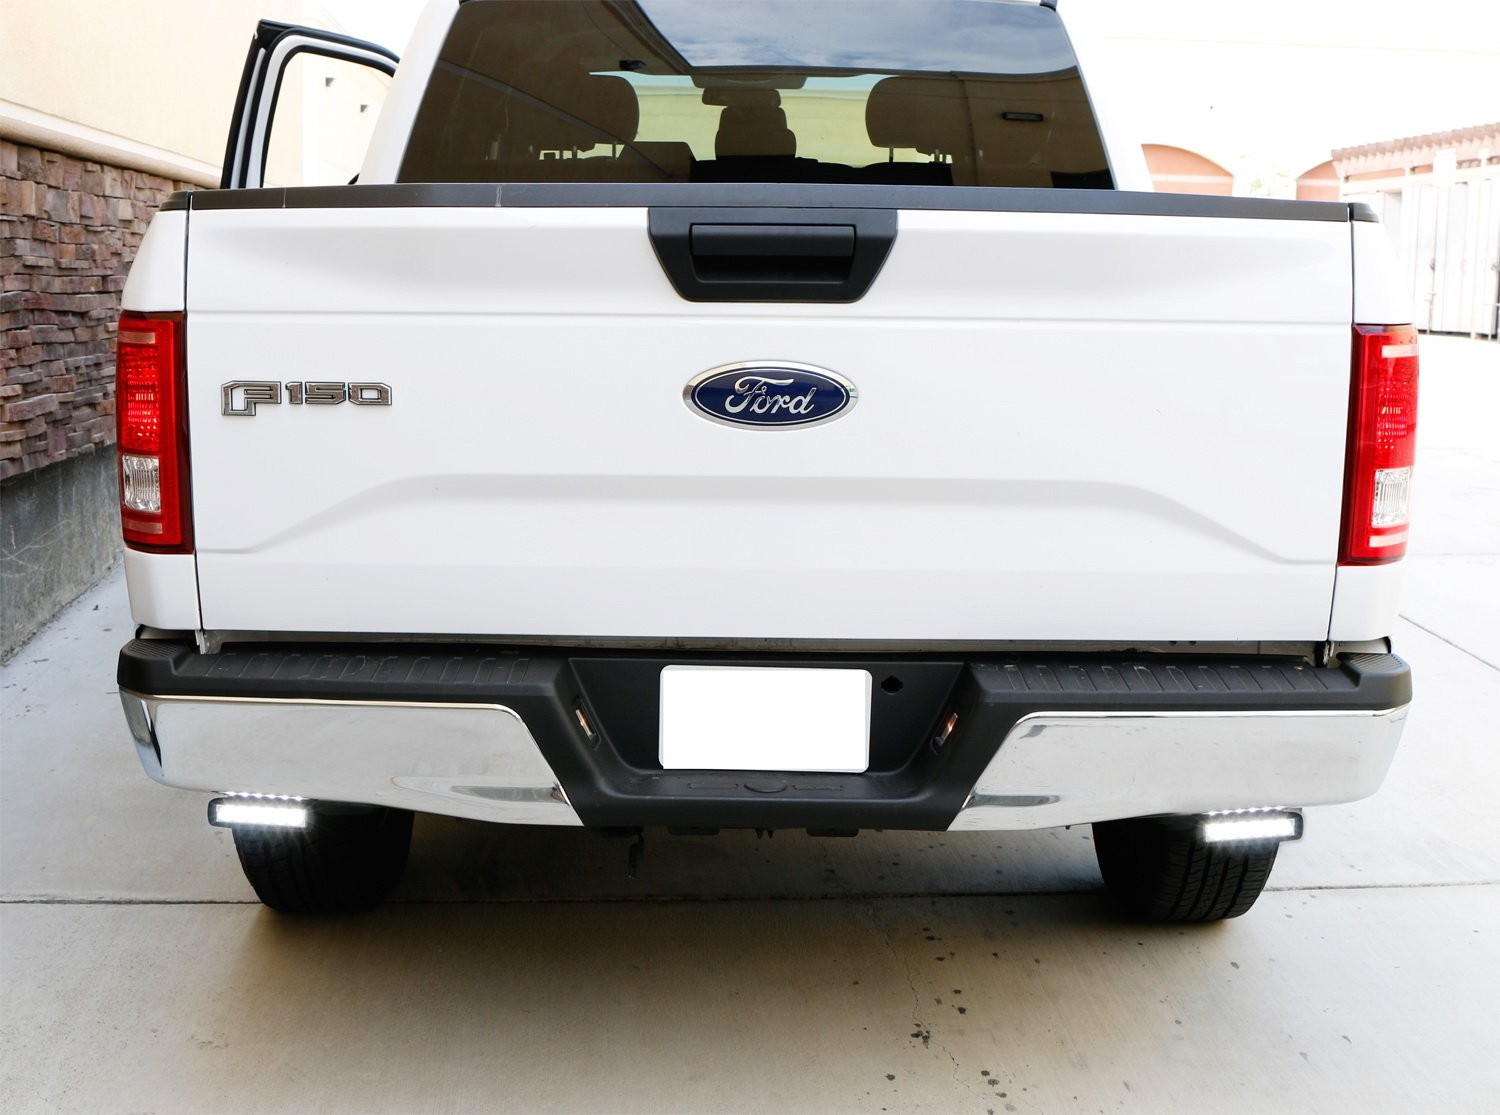 Amazon iJDMTOY Under Bumper LED Reverse Light Bar Kit For 2015 up Ford F150 & 17 up Raptor Includes 2 9W High Power LED Light Bars & Under Bumper